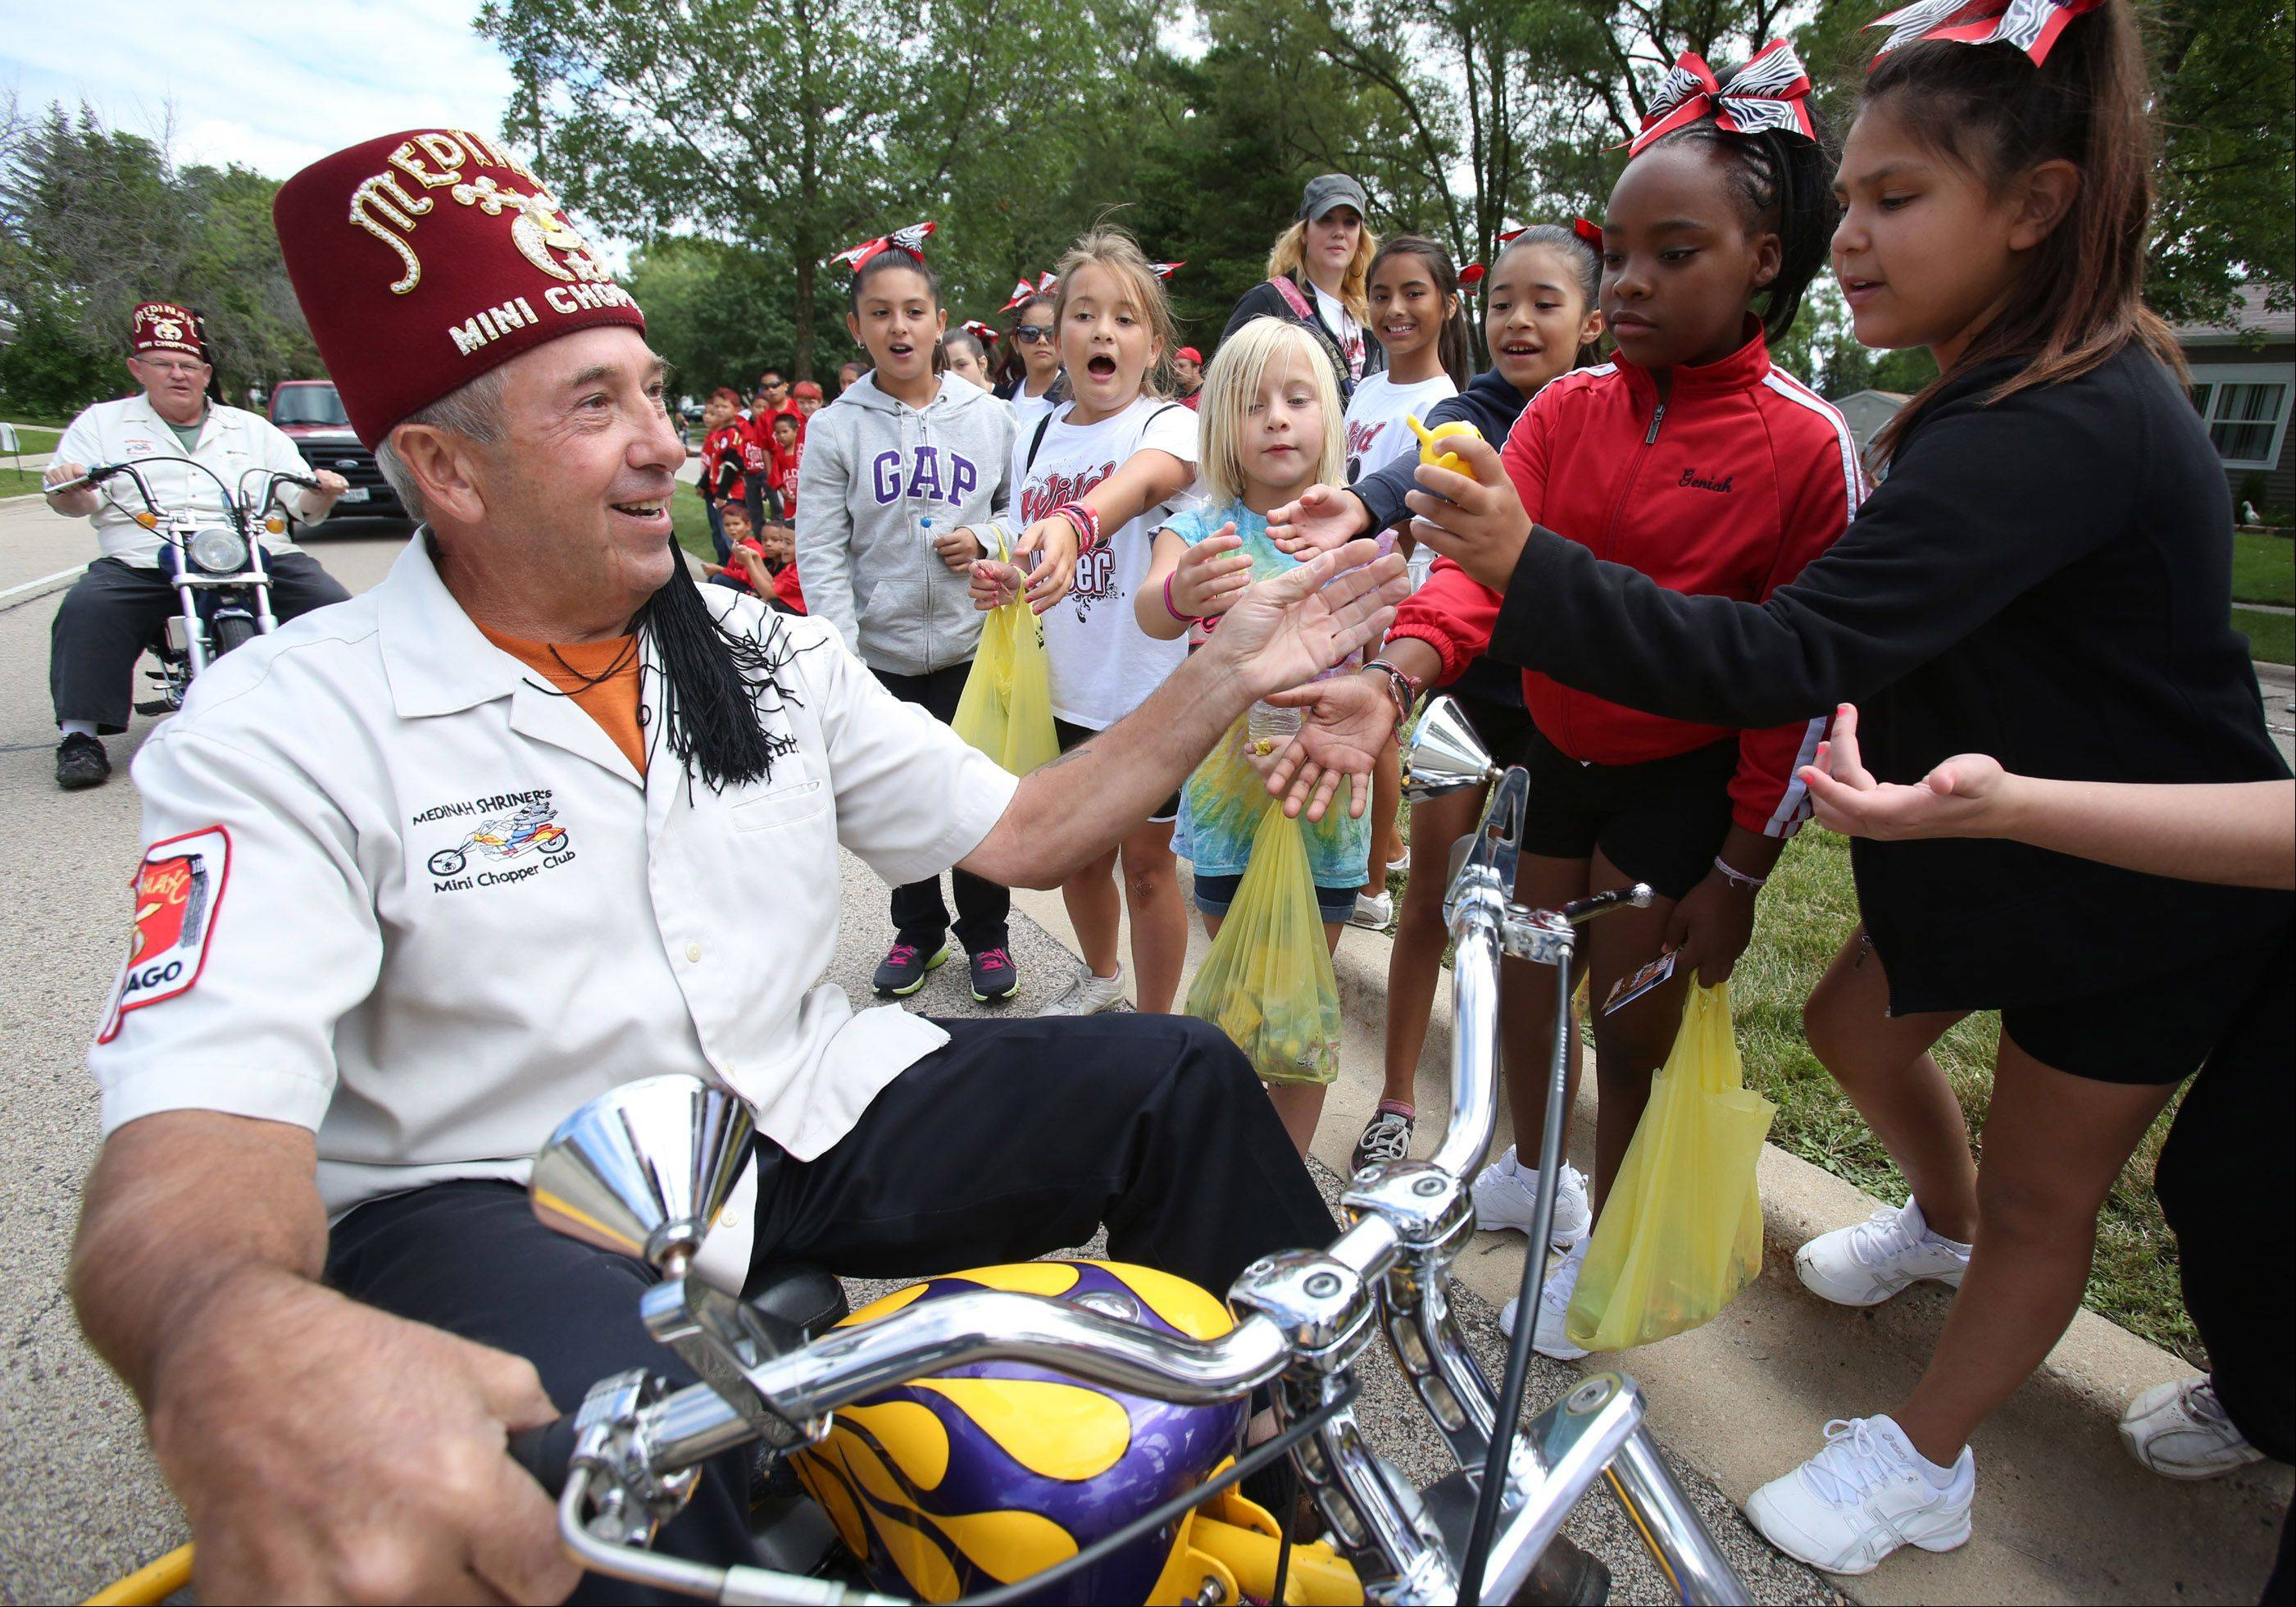 Scott Soldwisch with Medinah Shriners hands out small toy to children while riding a mini motorcycle in Streamwood Summer Celebration parade on Saturday.